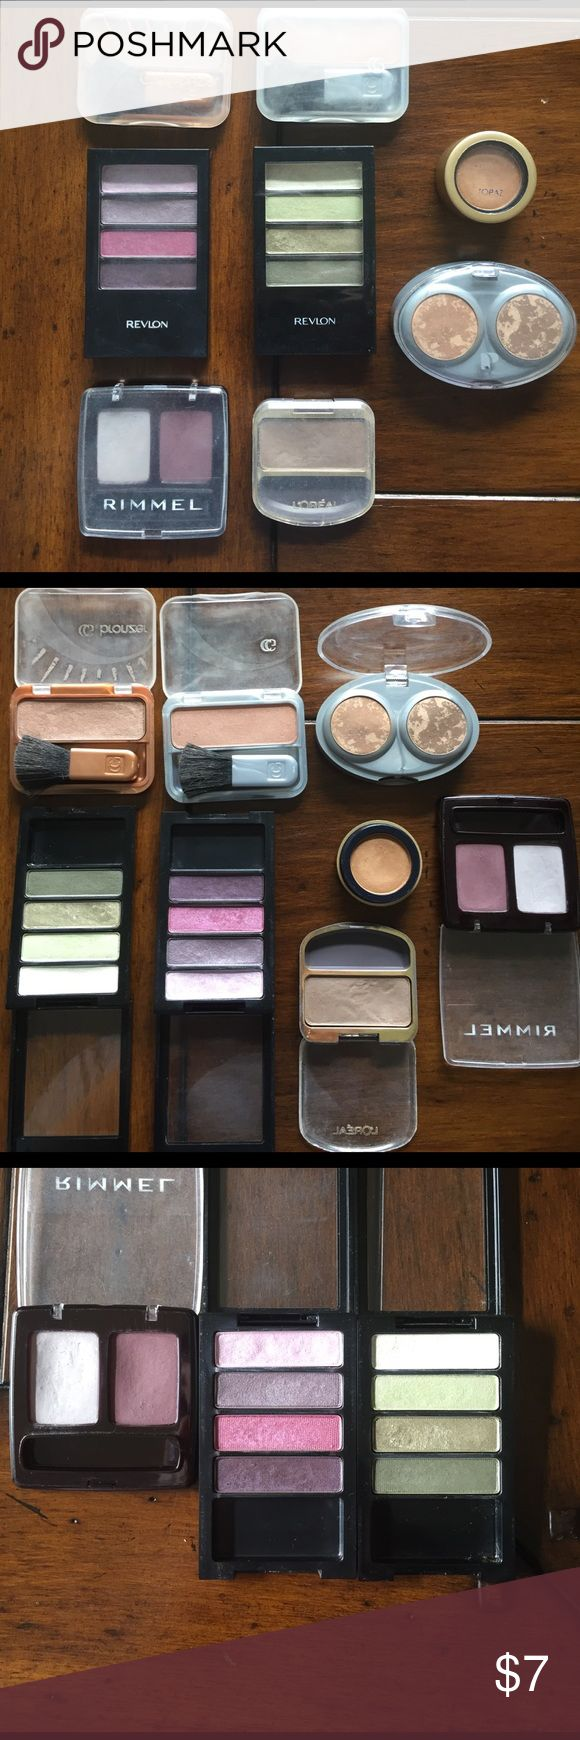 Used eyeshadow/bronzer bundle Used makeup bundle of 6 eyeshadows & 2 bronzers. All has been sanitized/sprayed with 91% isopropyl alcohol & dried. revlon palettes in berry bloom(purples) & spring moss (greens),  Rommel in orchid (purple), L'Oréal in sable (brown), iredale mineral shadow in topaz (gold), physicians formula light brown, 2 cover girl bronzers. Eyeshadows do not include the applicators. All minimally used. L'Oréal only shadow with some scratches. Open to reasonable offers. Makeup…